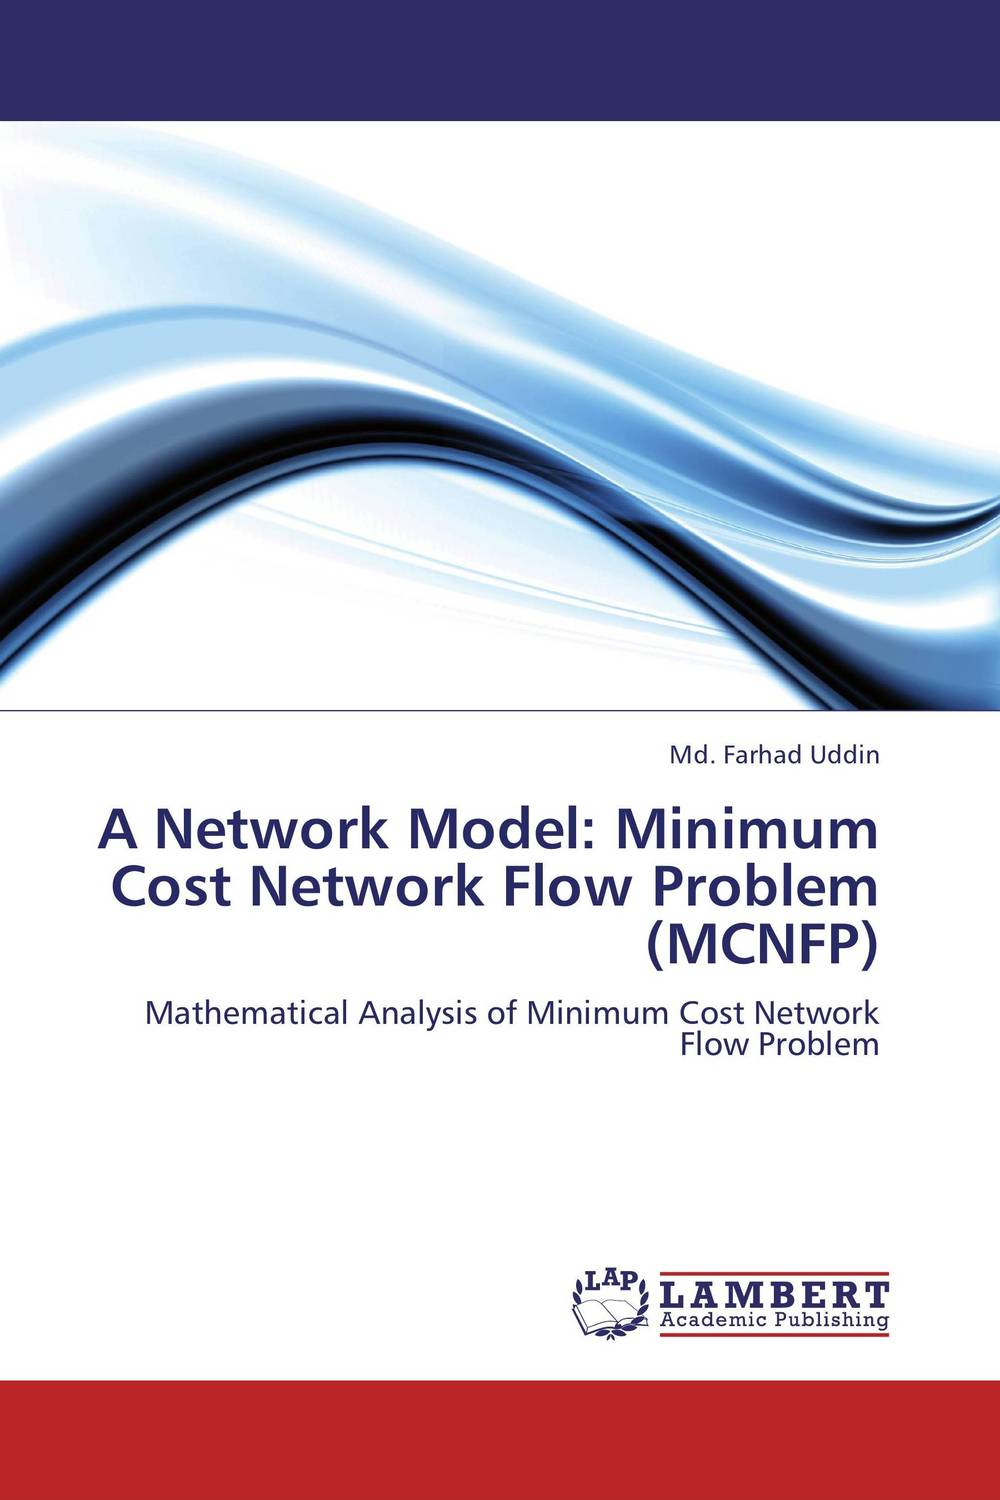 A Network Model: Minimum Cost Network Flow Problem (MCNFP) minimum of two